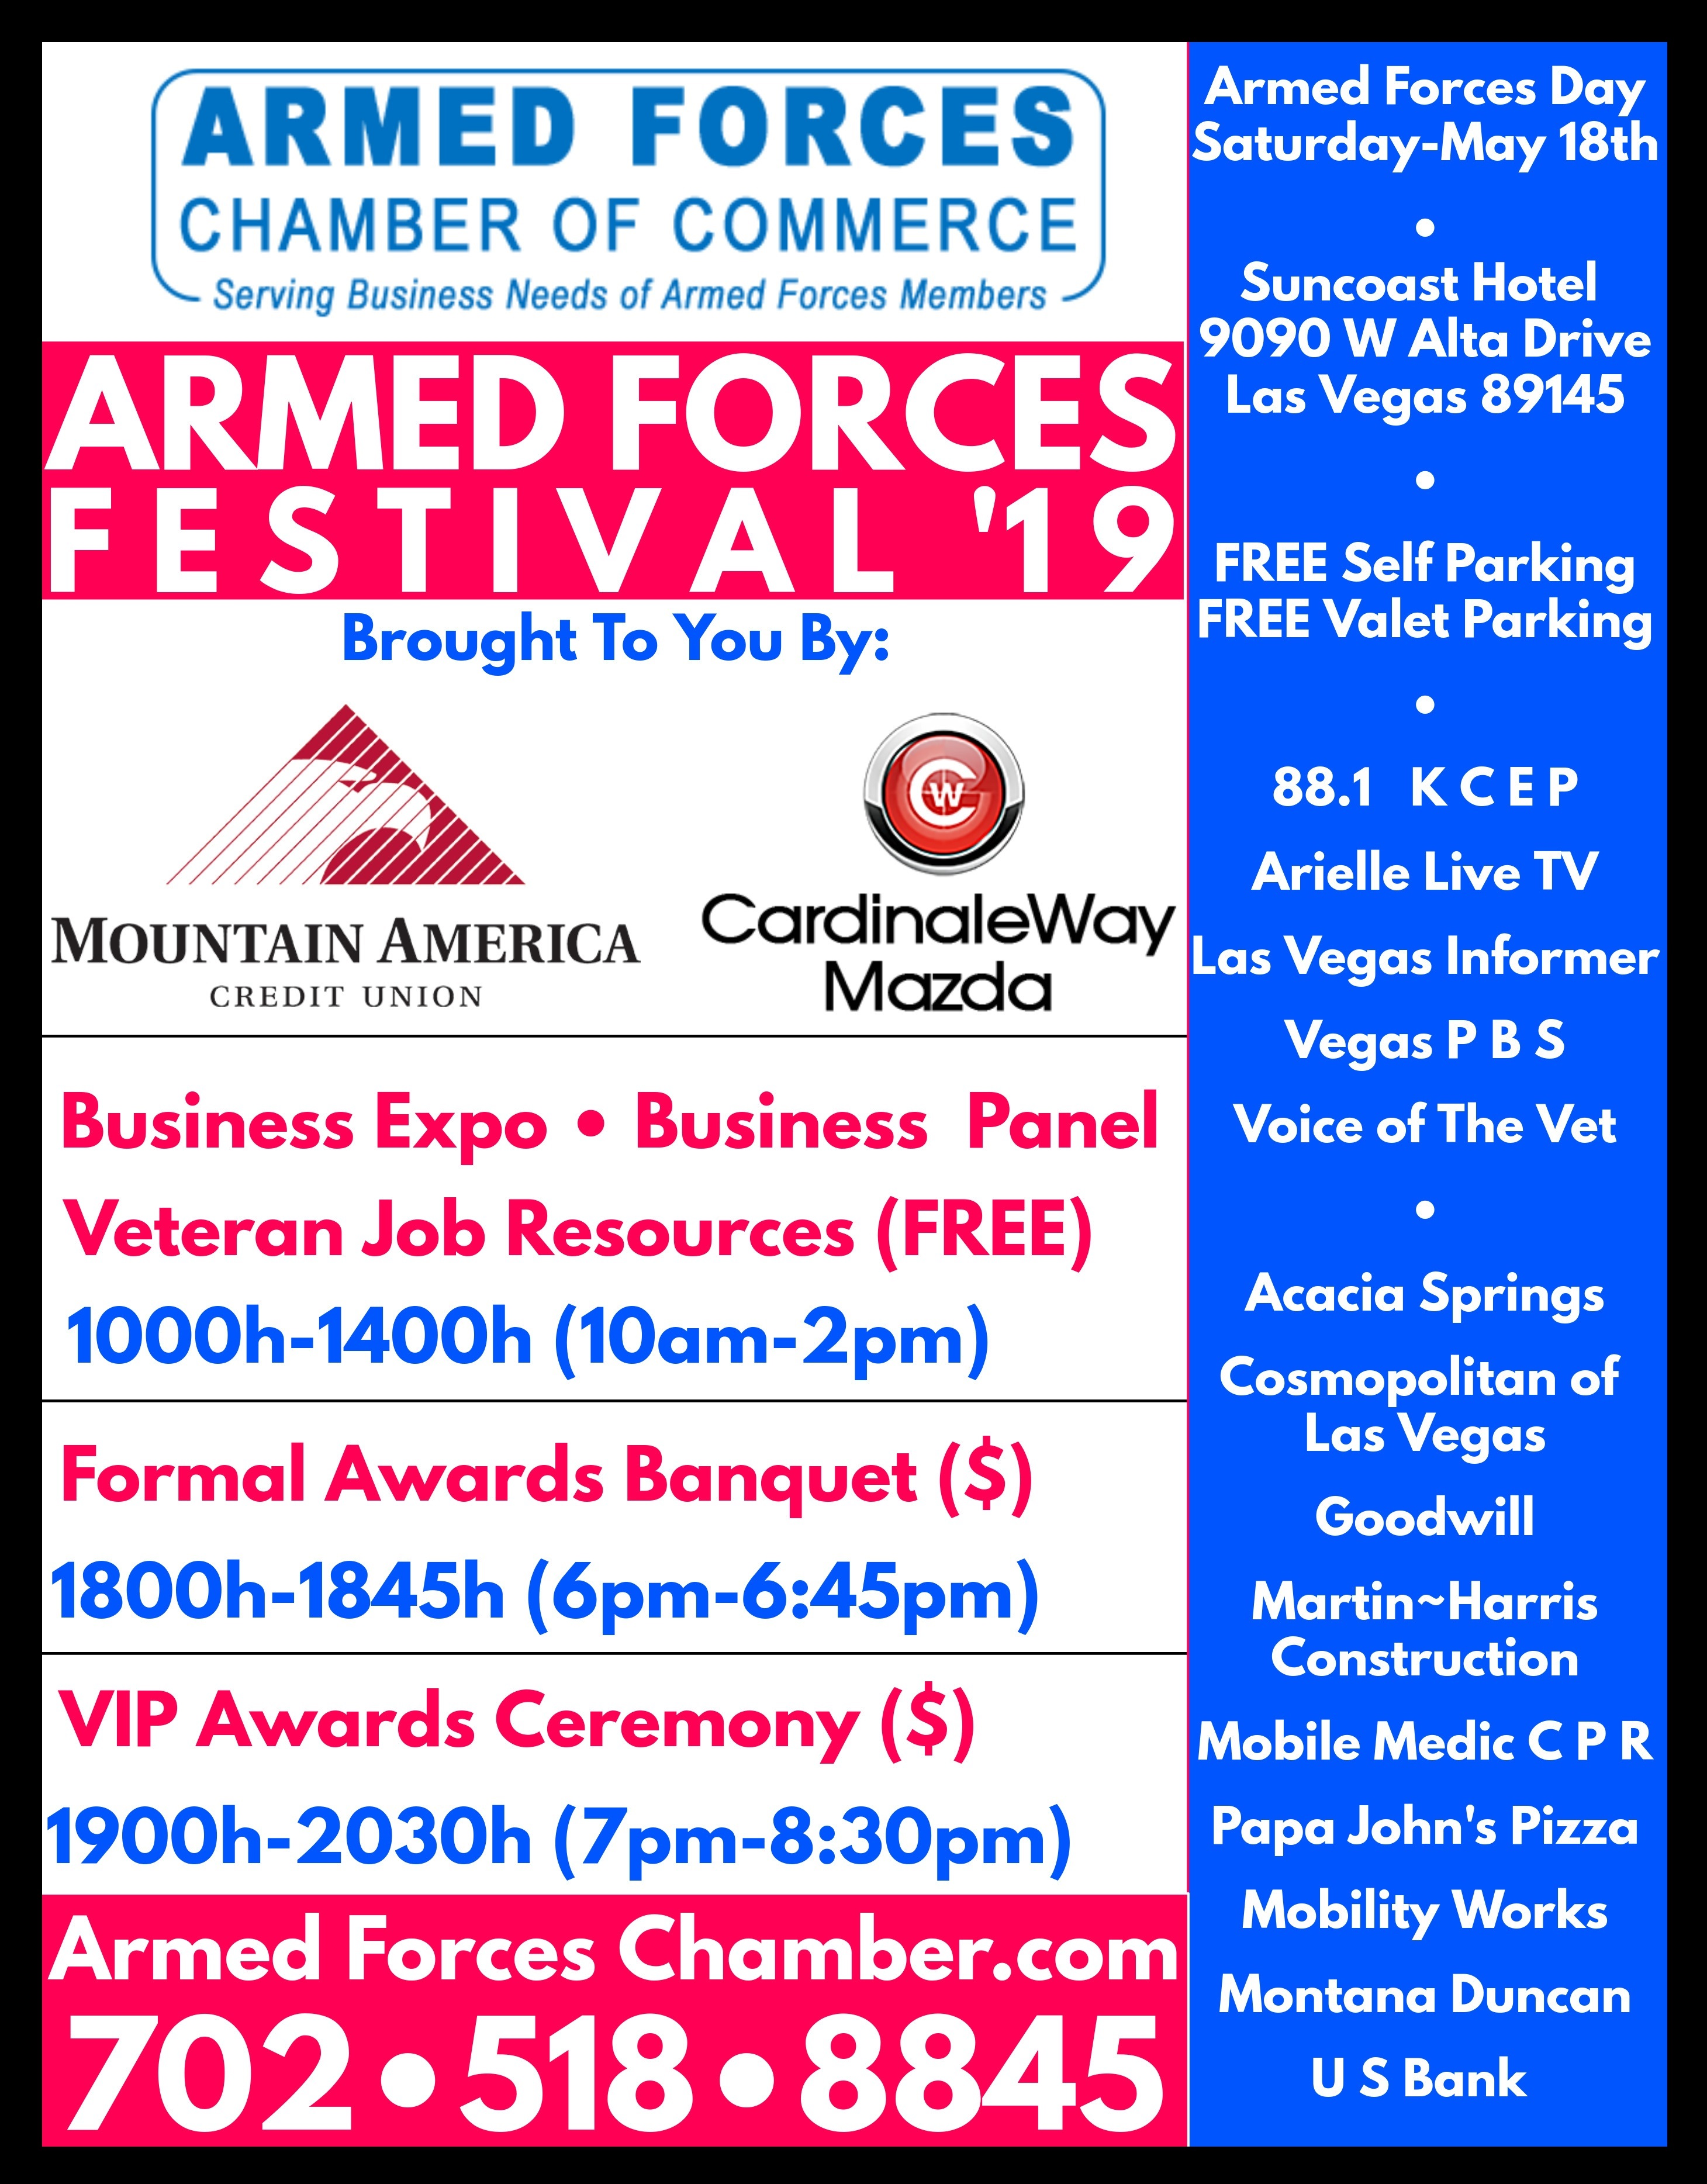 Armed Forces Day Festival - Nevada Department of Veterans Services